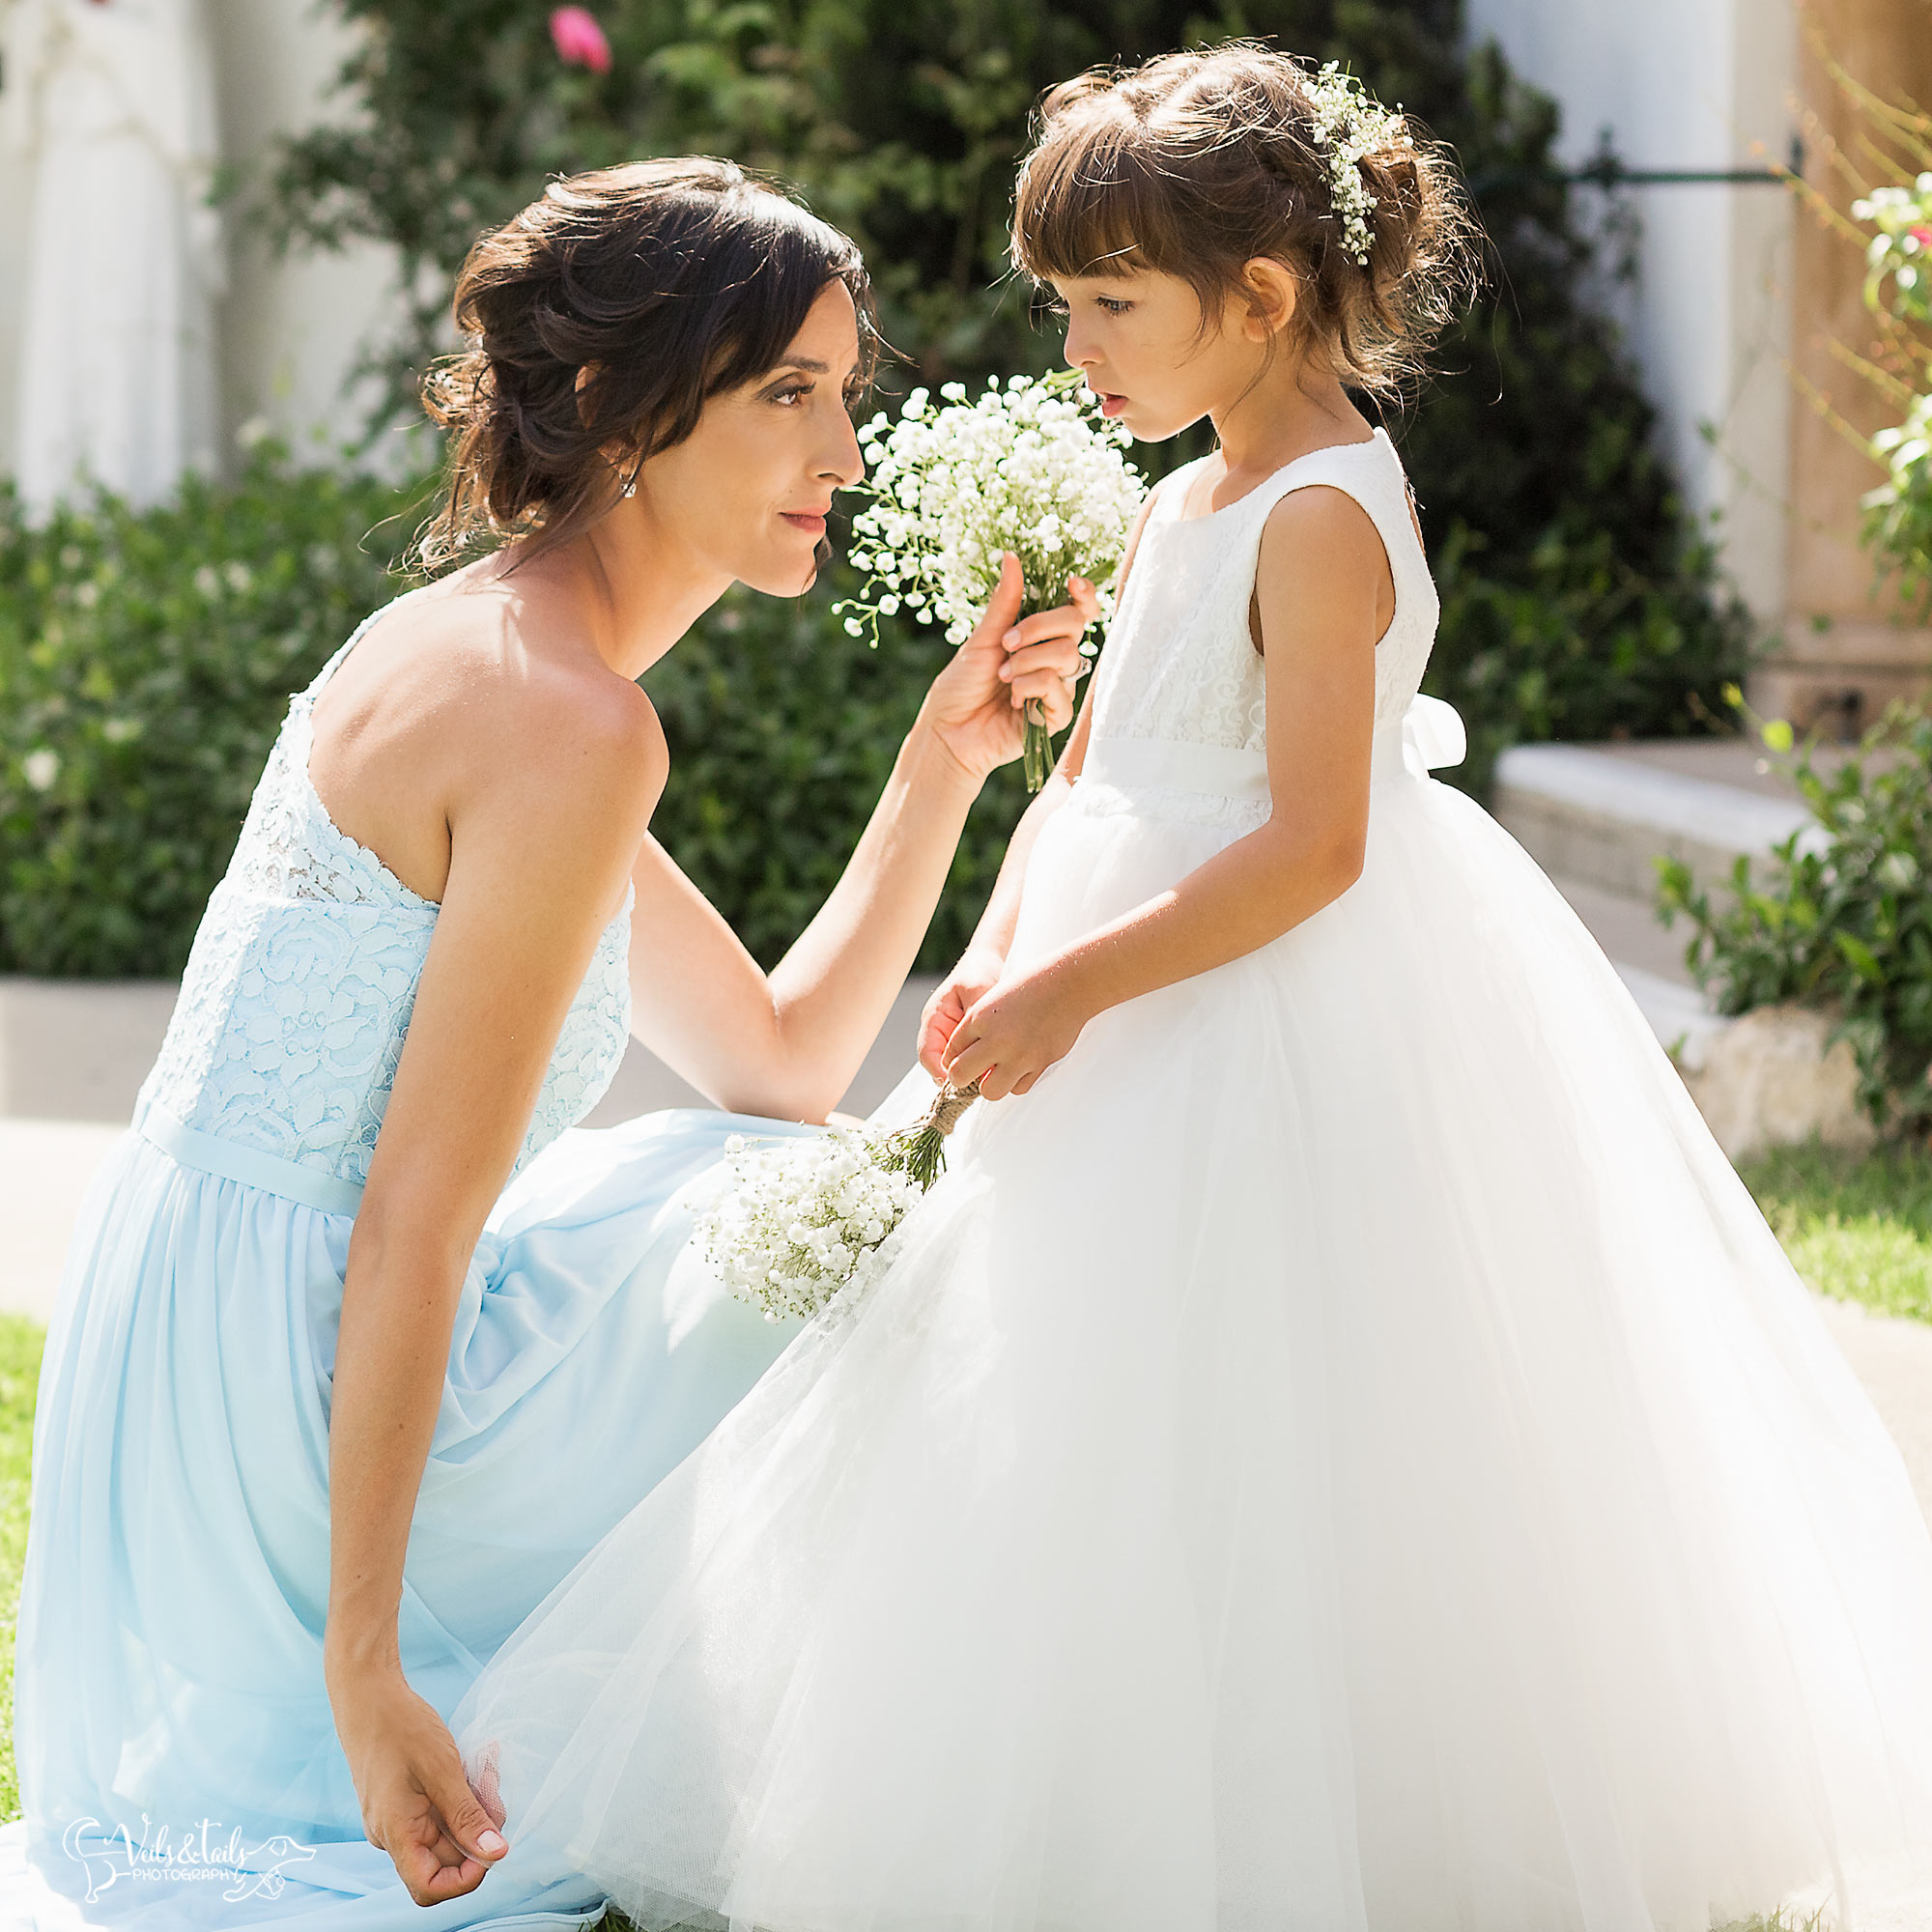 Flower Girl and Bridesmaid